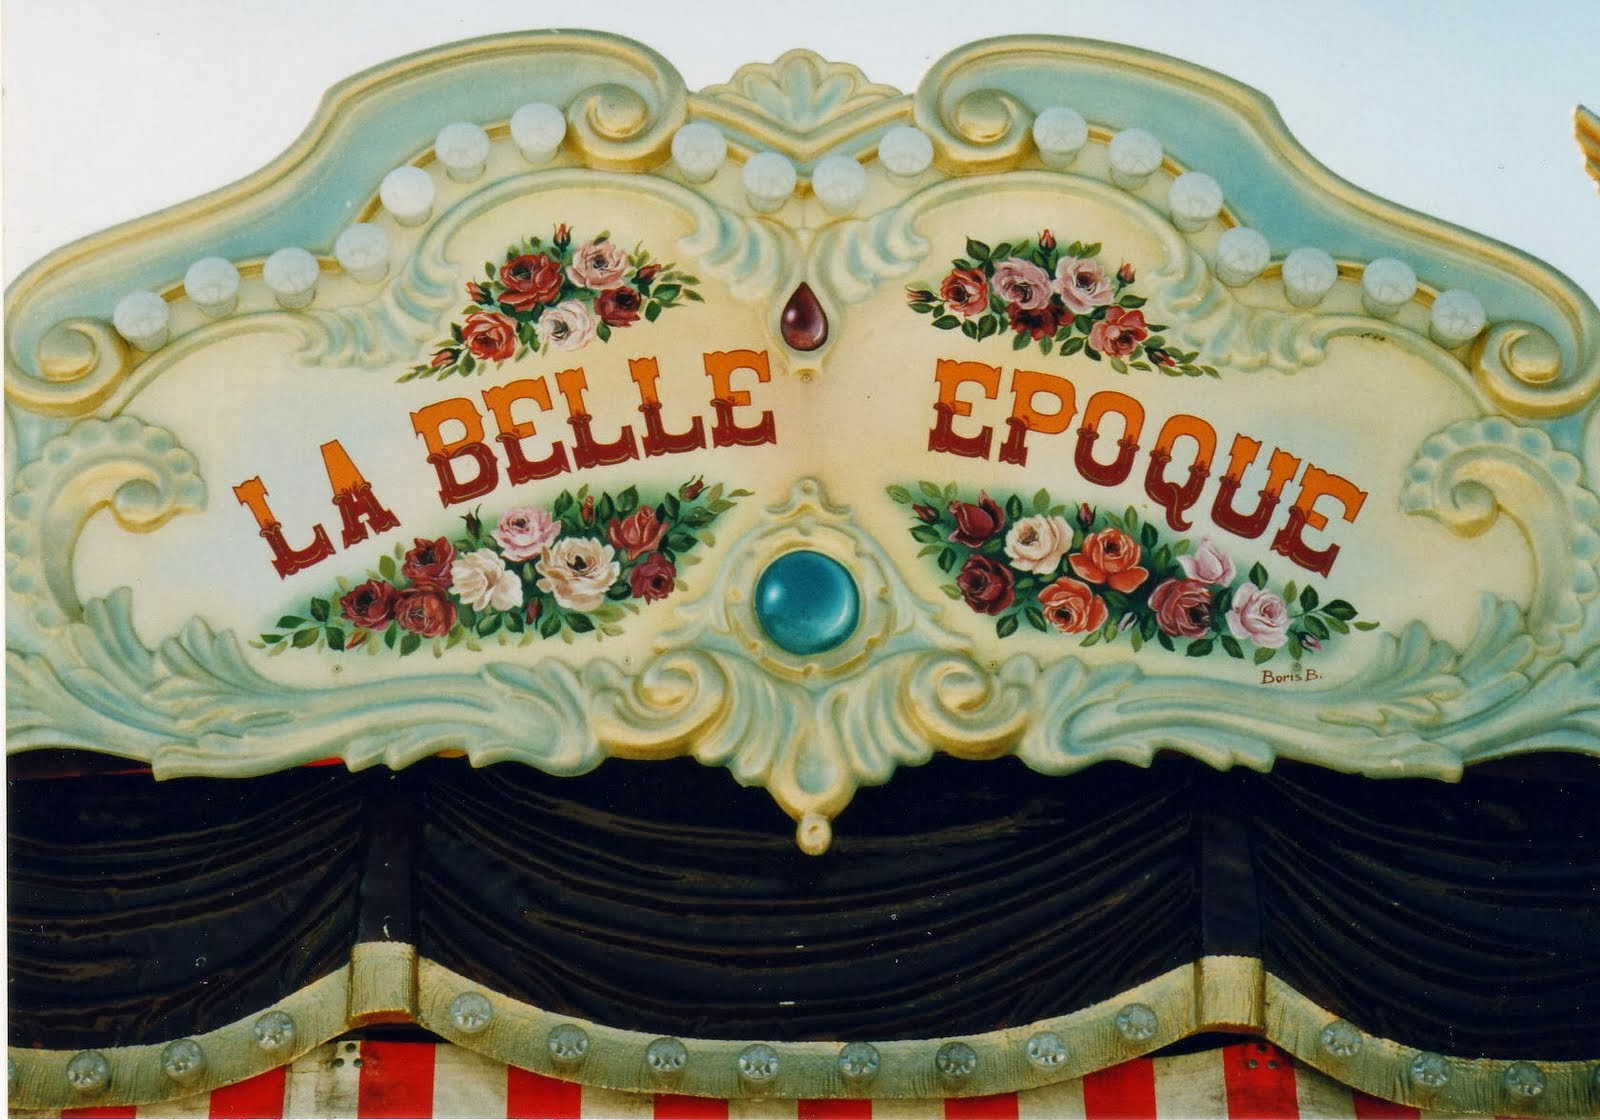 la belle epoque The latest tweets from la belle epoque (@labelle_epoque_) vintage items mainly from france cottage chic, shabby chic, french country, rustic or industrial.